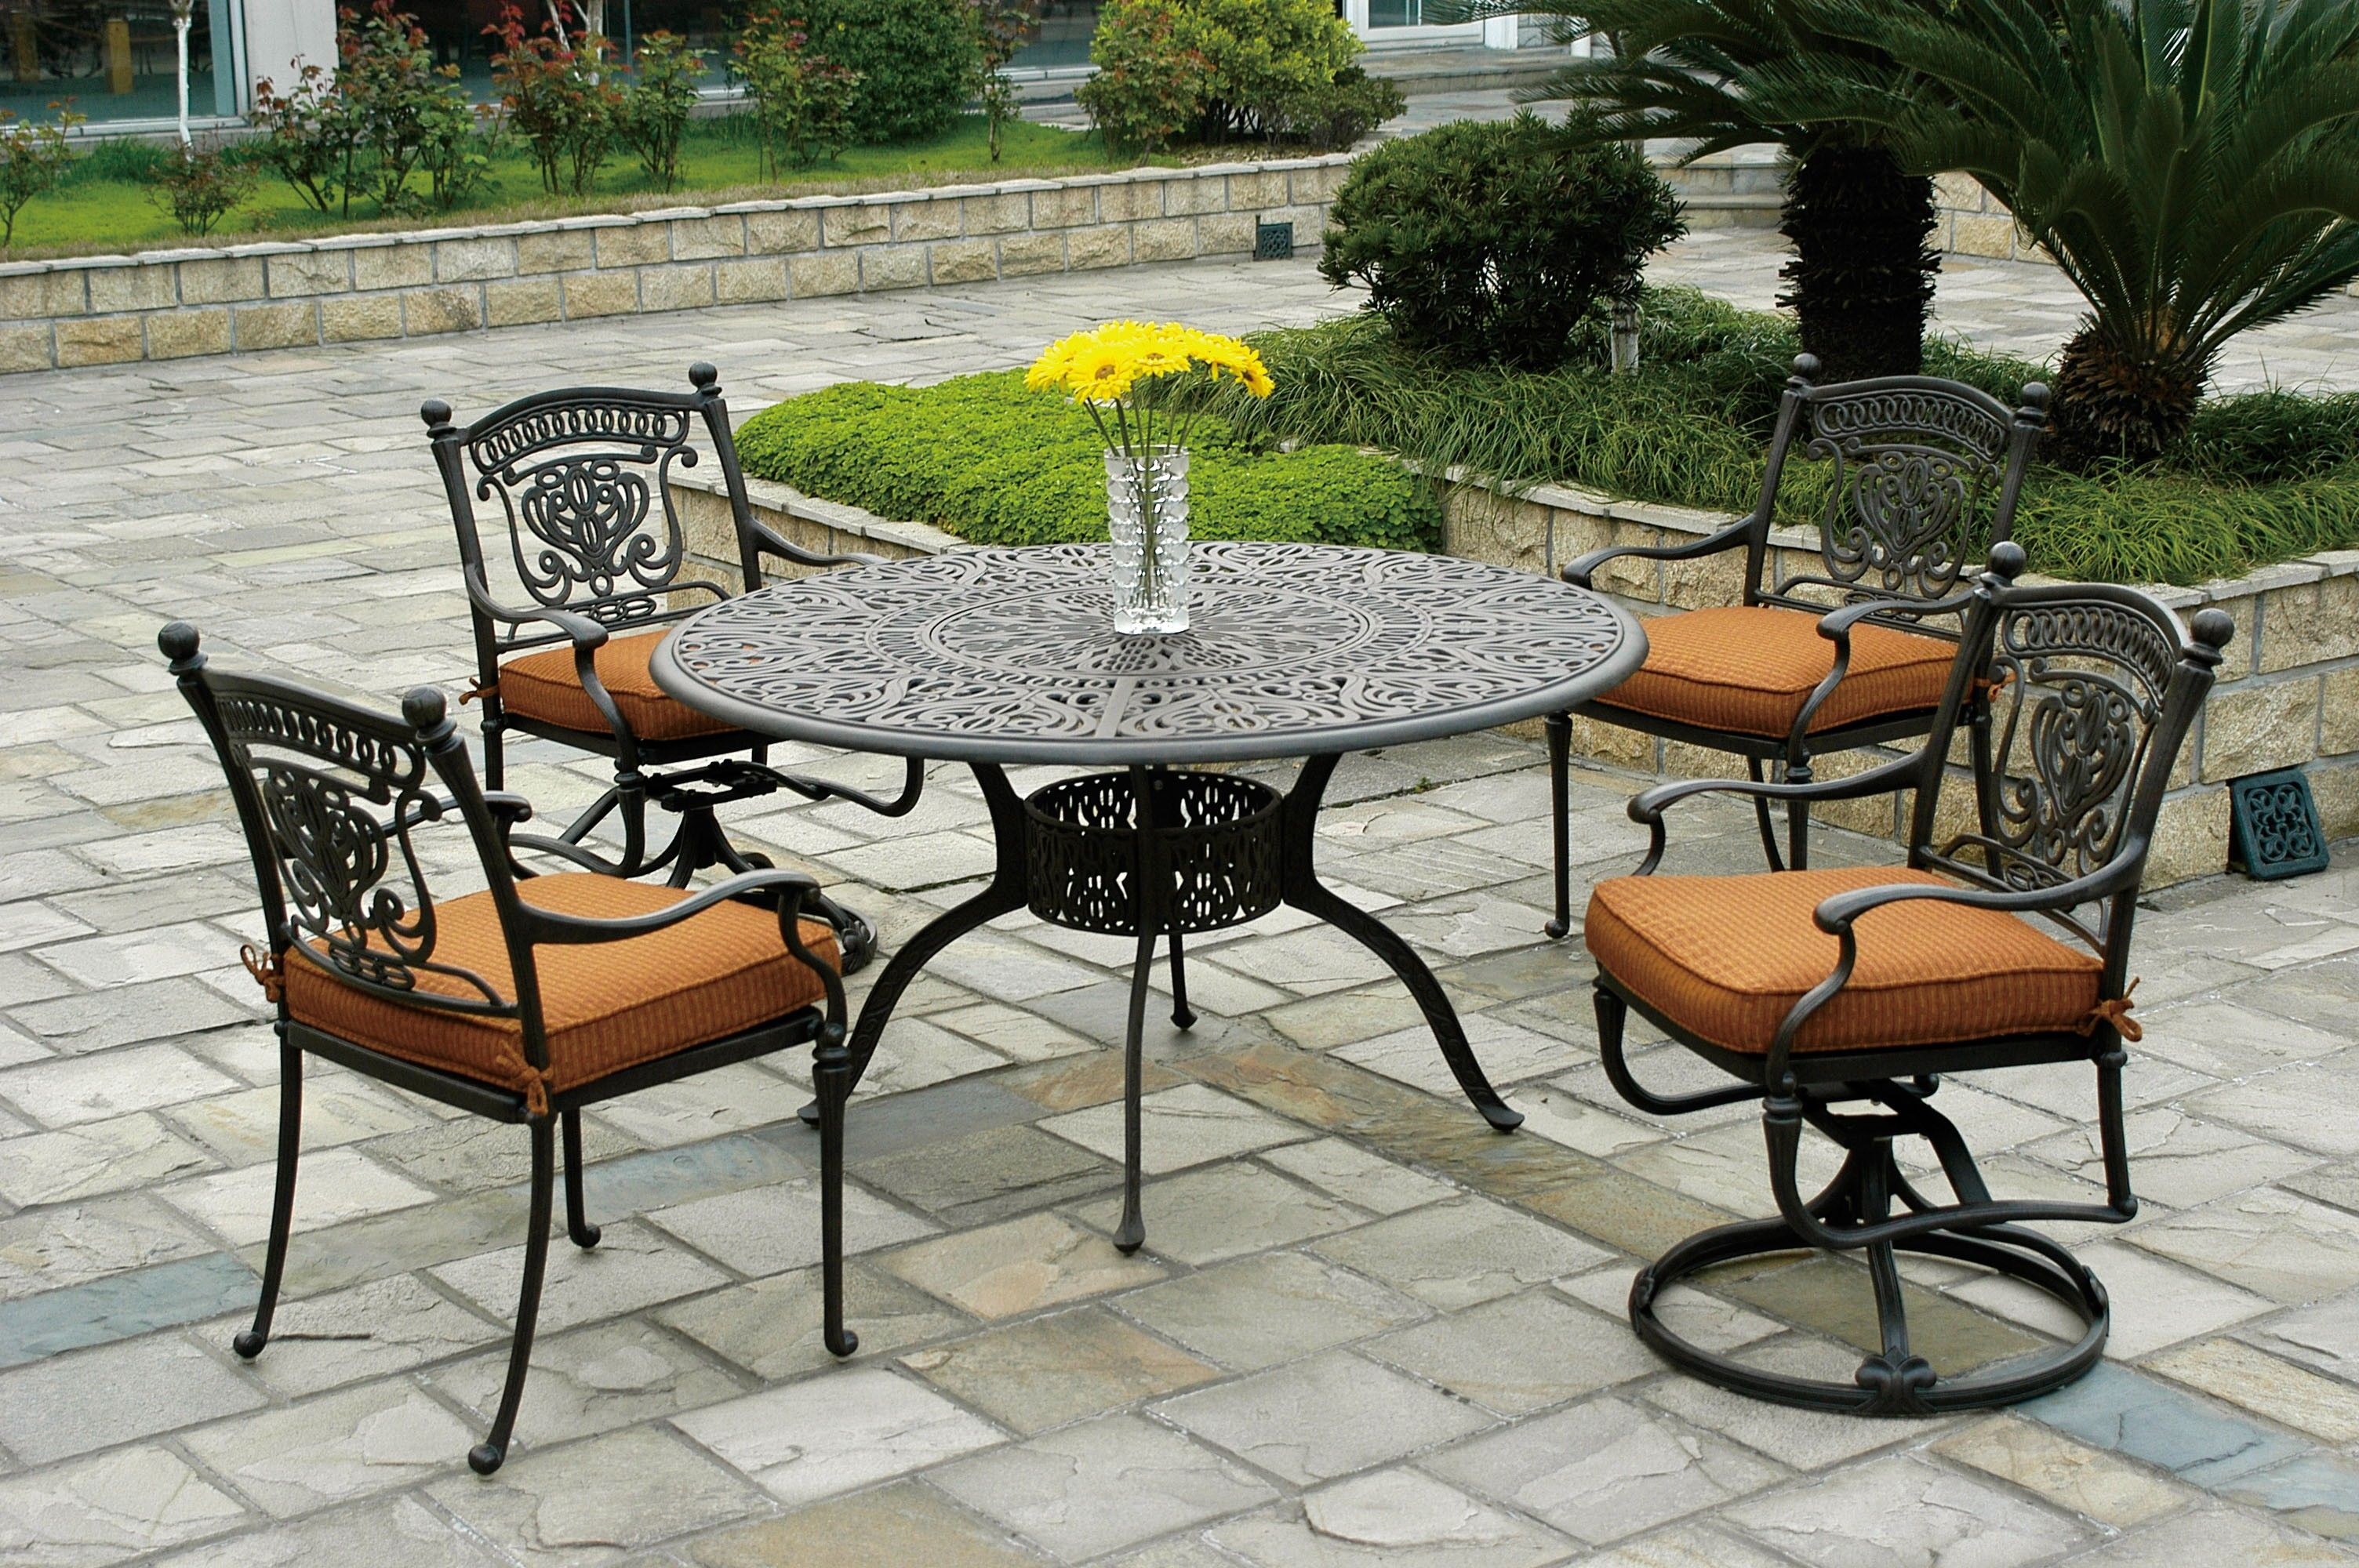 Cast Iron Patio Set Table Chairs Garden Furniture   http   www     Cast Iron Patio Set Table Chairs Garden Furniture    http   www basepaircomm com cast iron patio set table chairs garden  furniture 1558